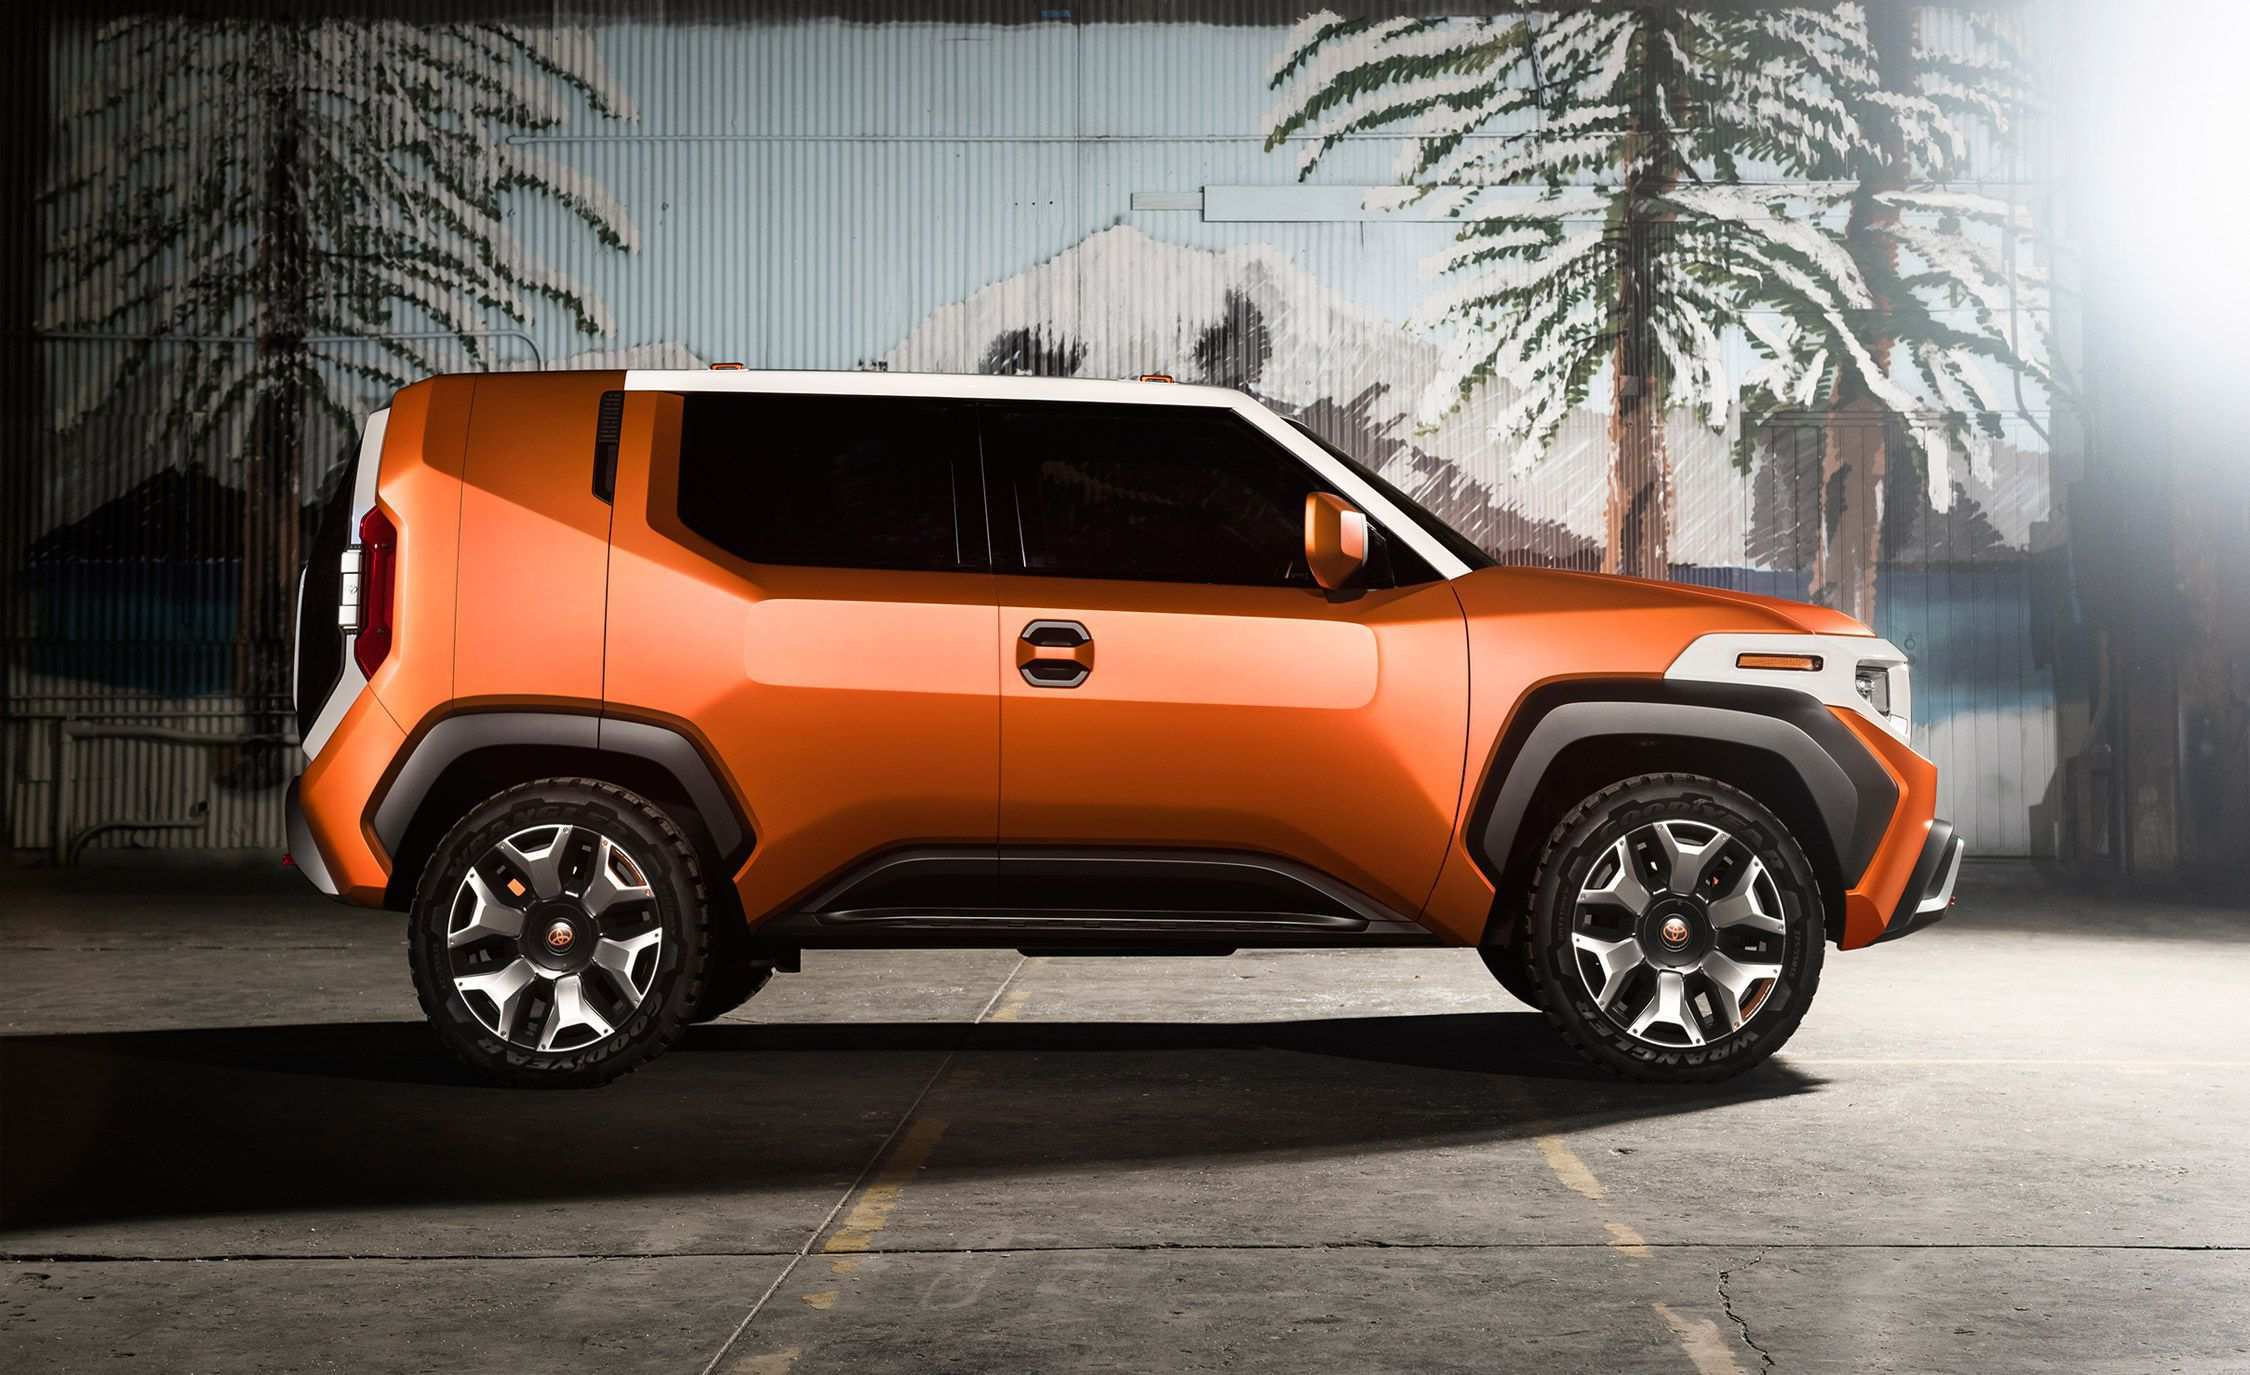 79 New Toyota Jeep 2020 New Concept for Toyota Jeep 2020